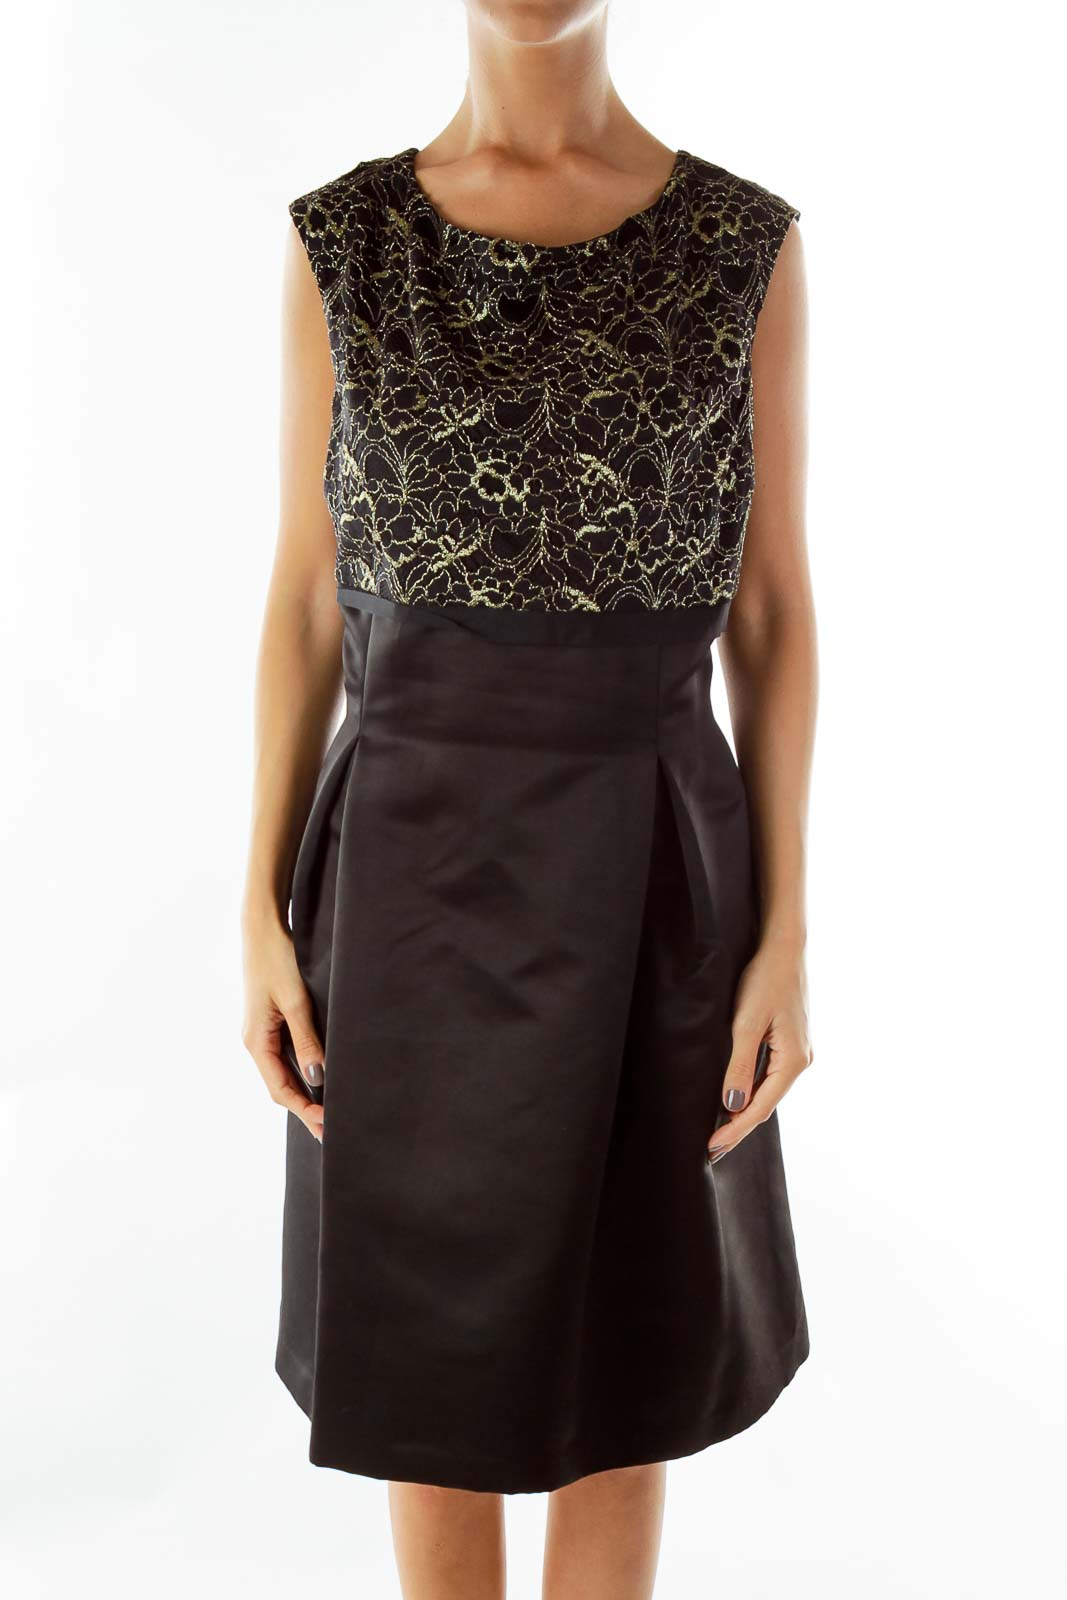 Black Gold Sparkly Lace A-Line Dress Front